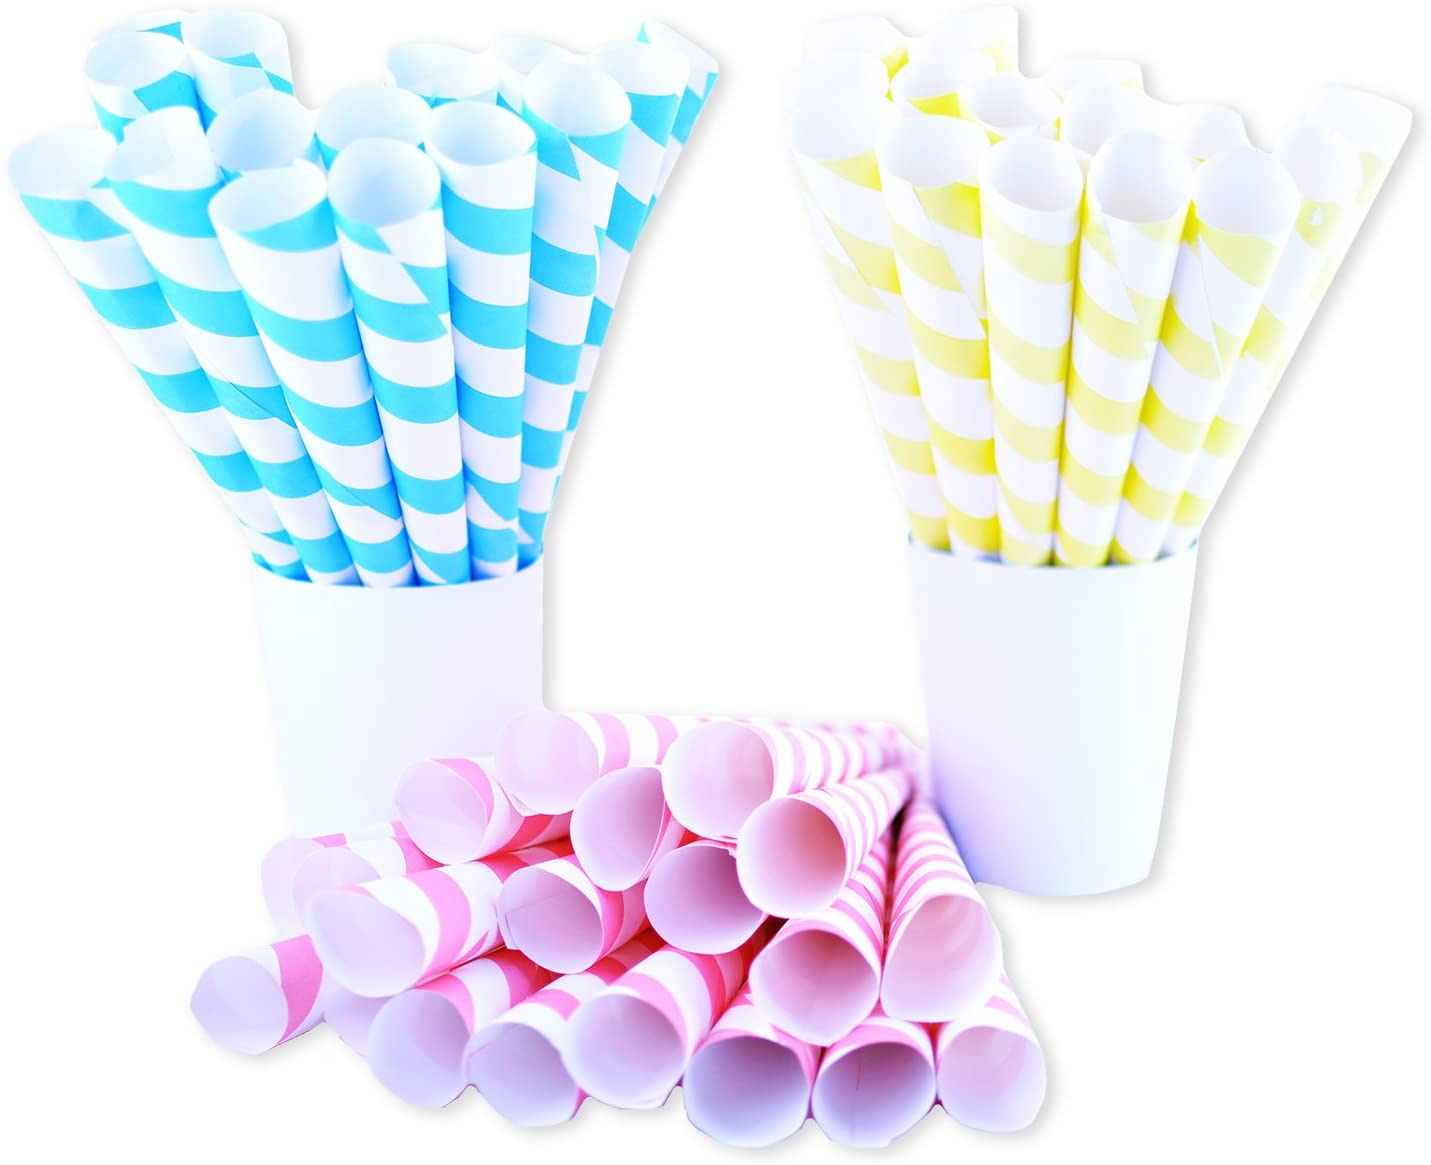 Fairy Cones Premium Multicolor Cotton Candy Cones 50 Pieces Pastel Yellow Blue and Red White Striped Cones Colorful Instructions Carnival Vintage Pastel Style Perfect for Multiple Themes and All Ages